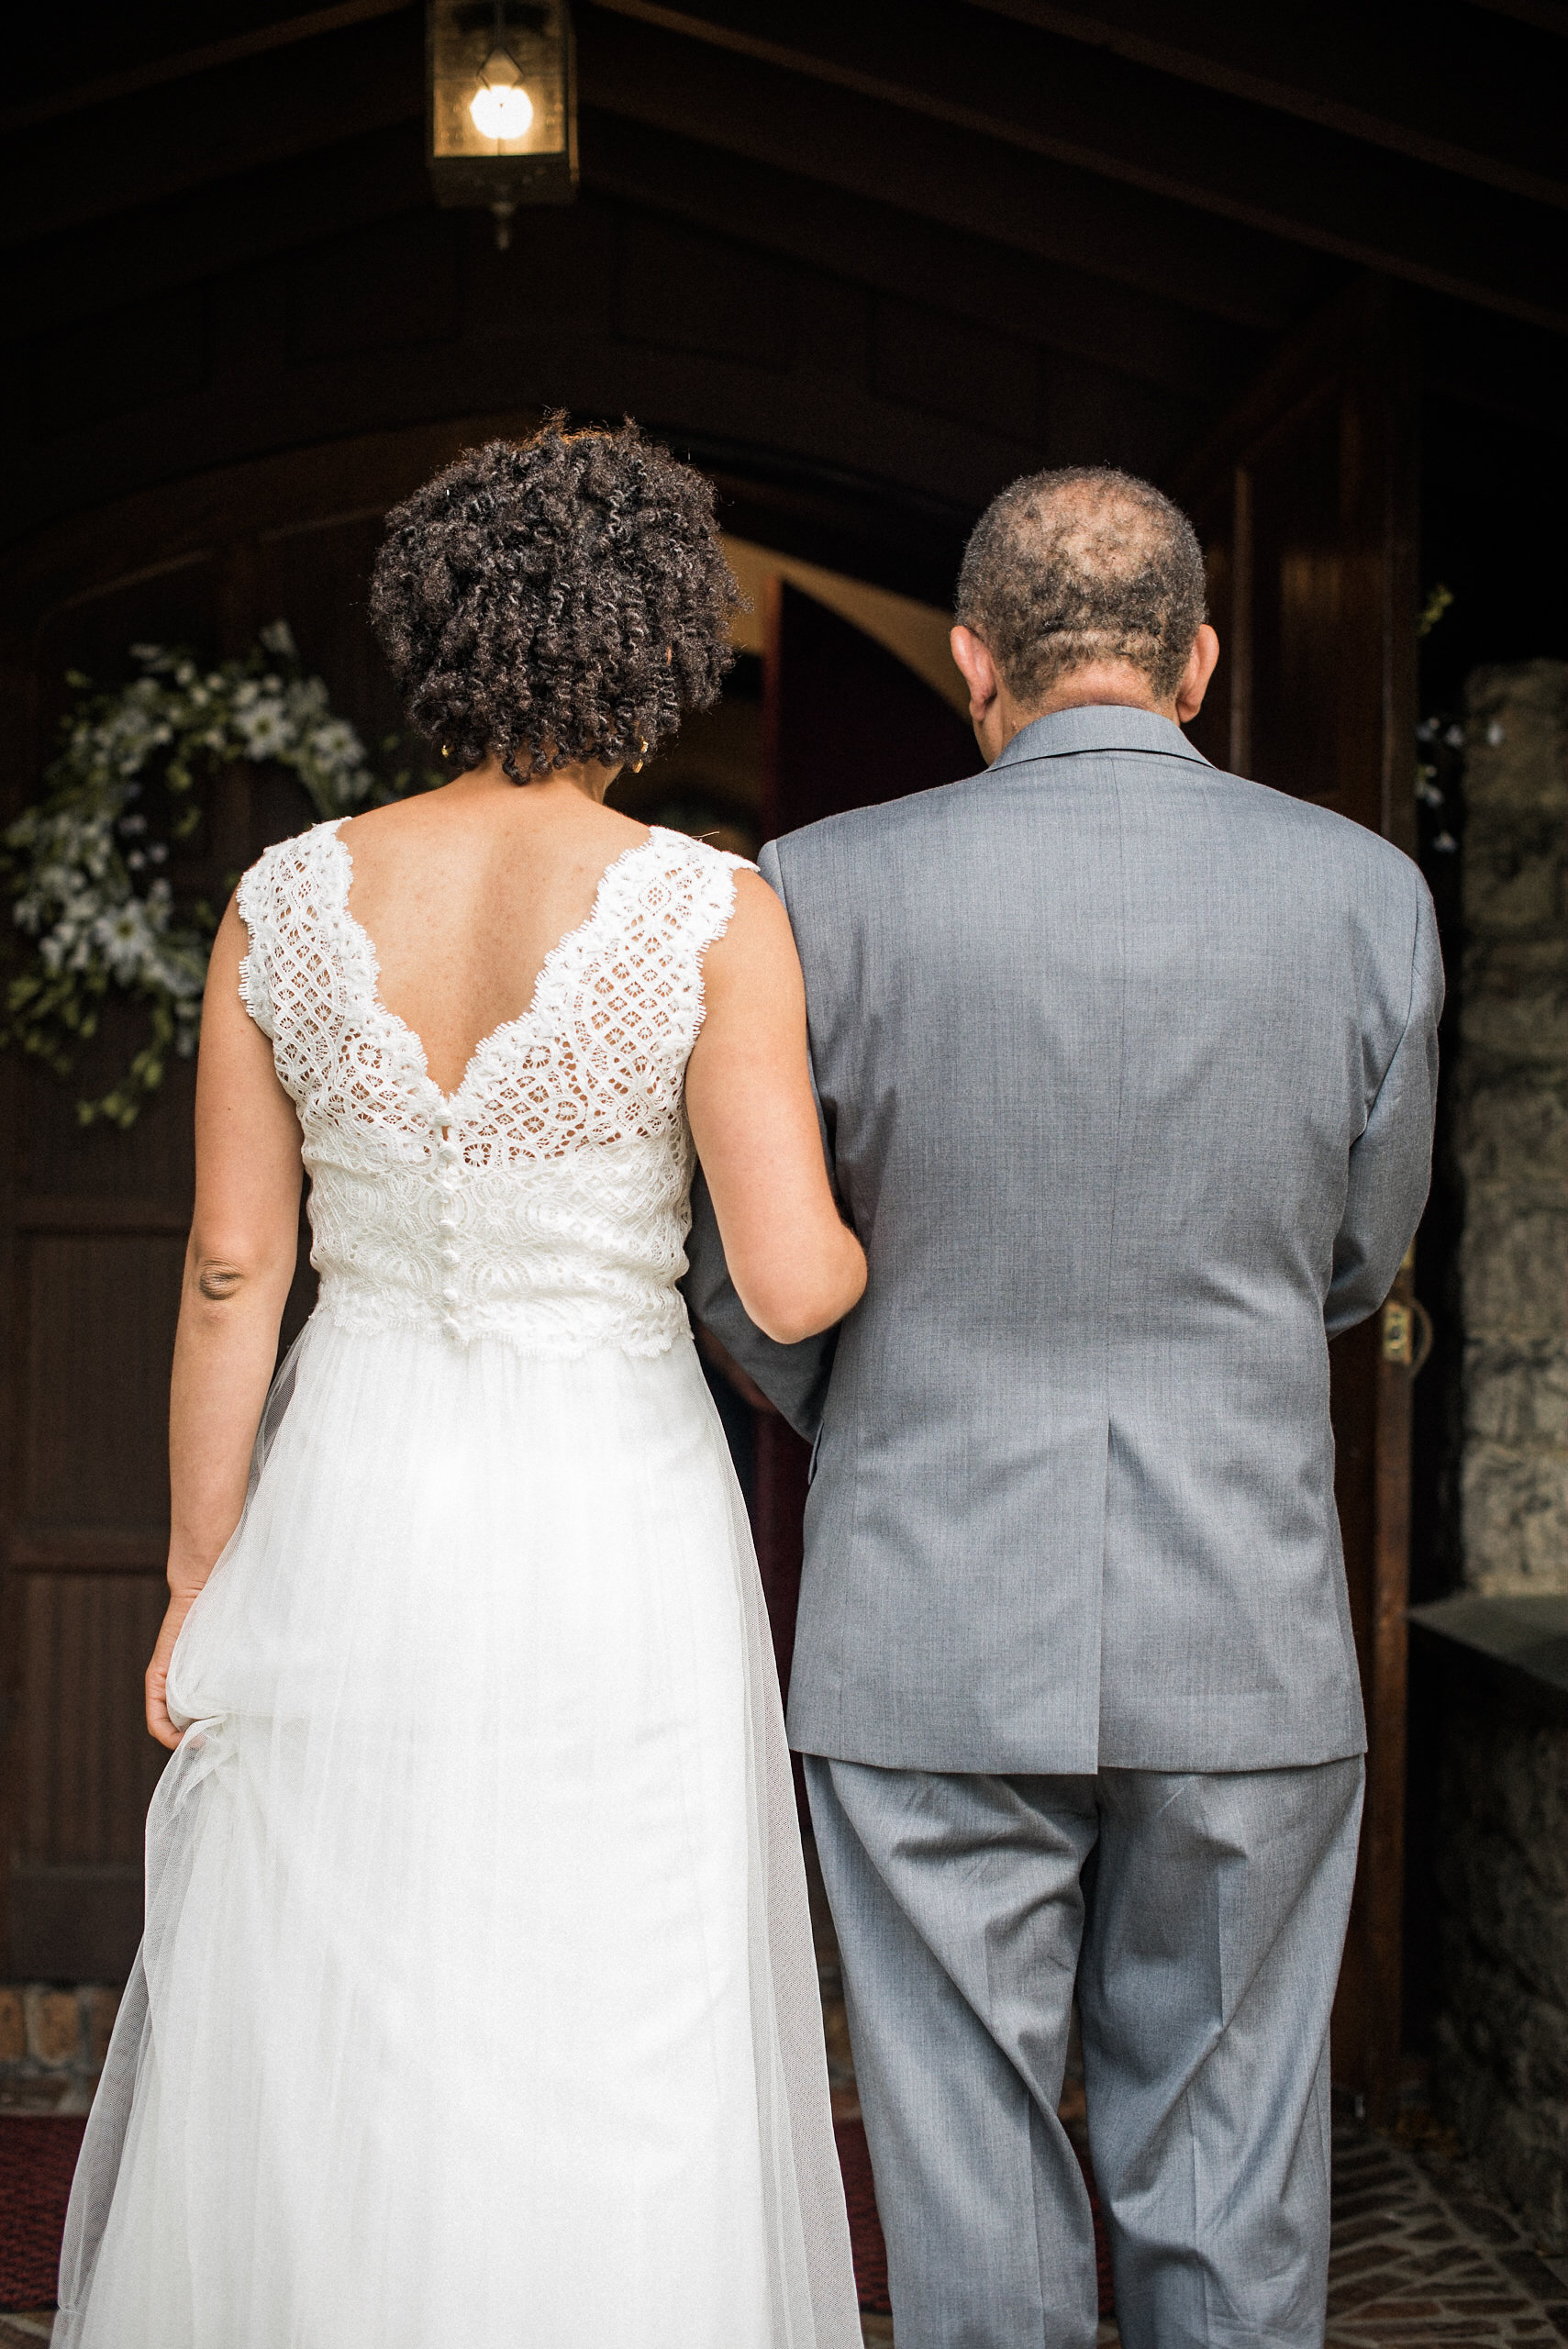 Father and bride seen from behind